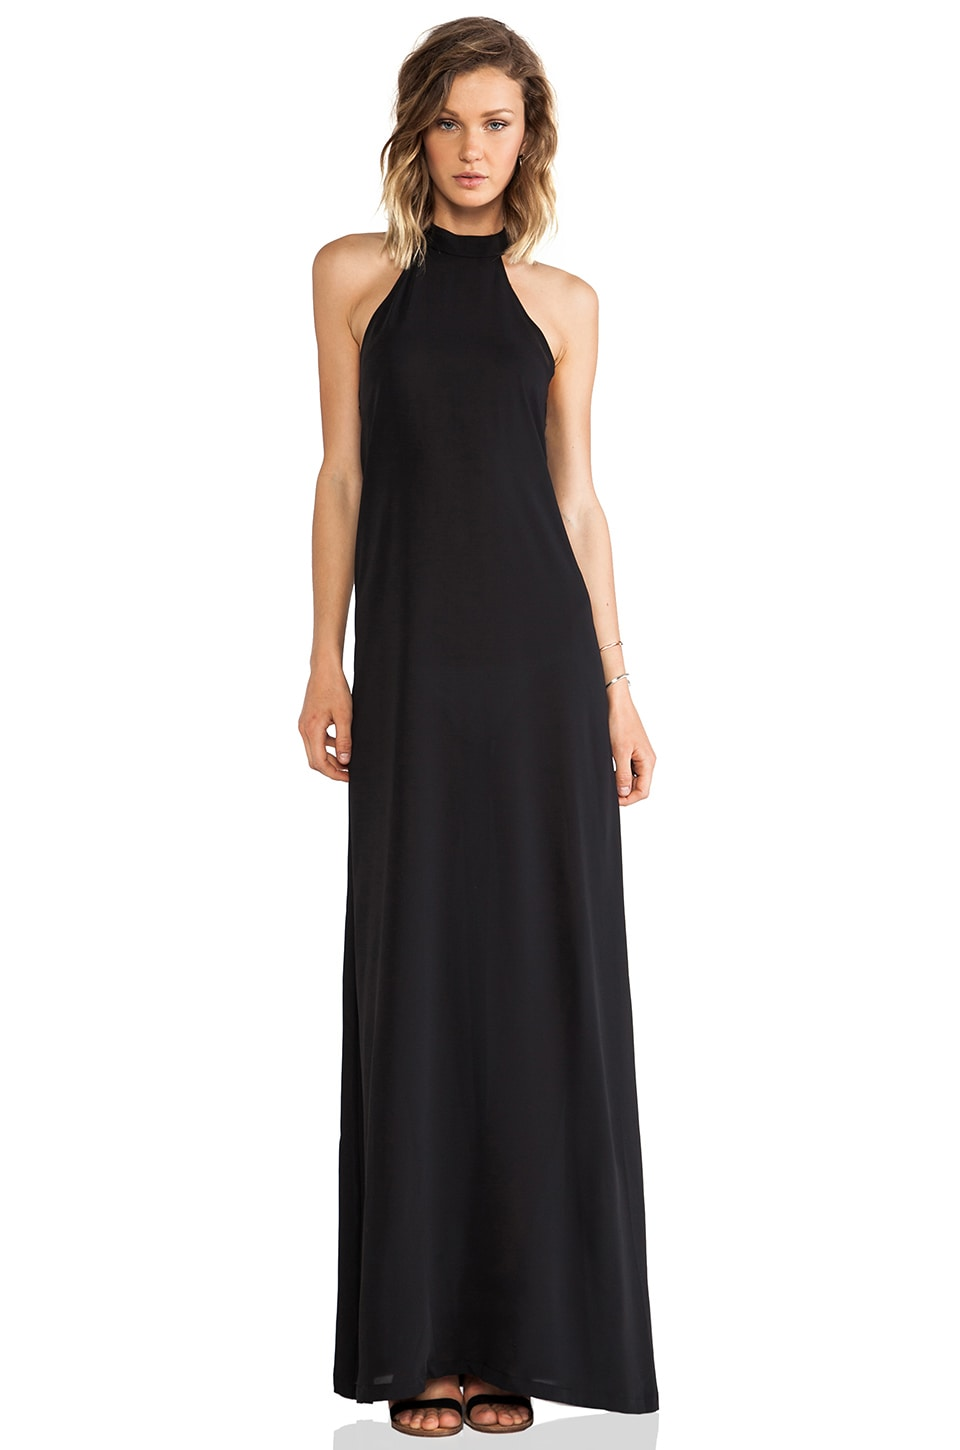 AQ/AQ Helden Maxi Dress in Black